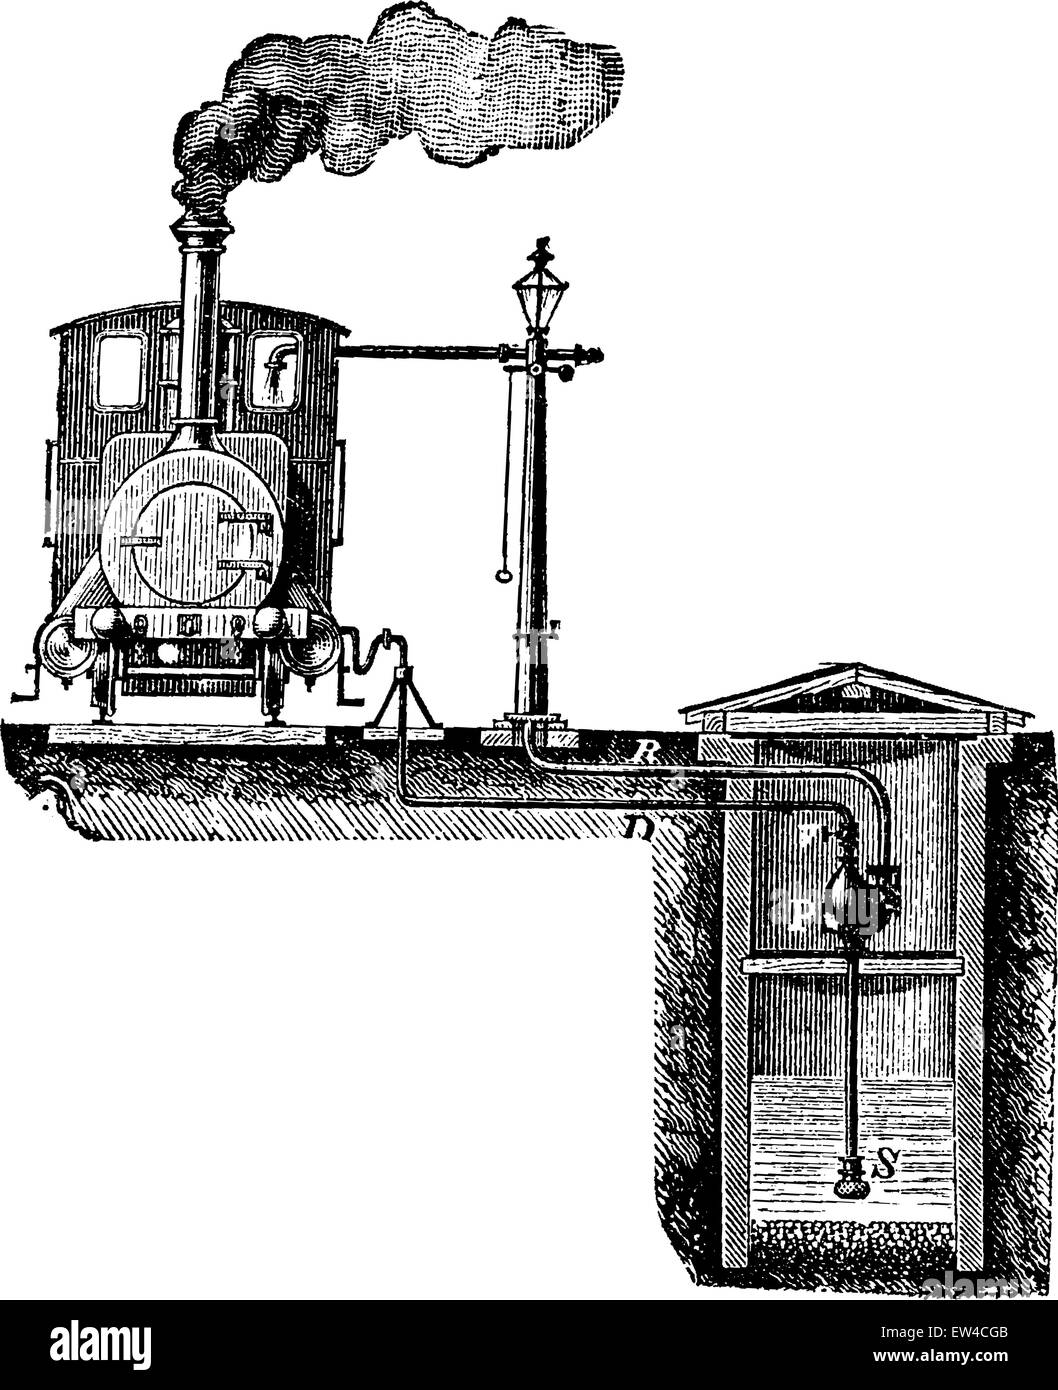 Pulsometer used in railways, vintage engraved illustration. Industrial encyclopedia E.-O. Lami - 1875. Stock Vector